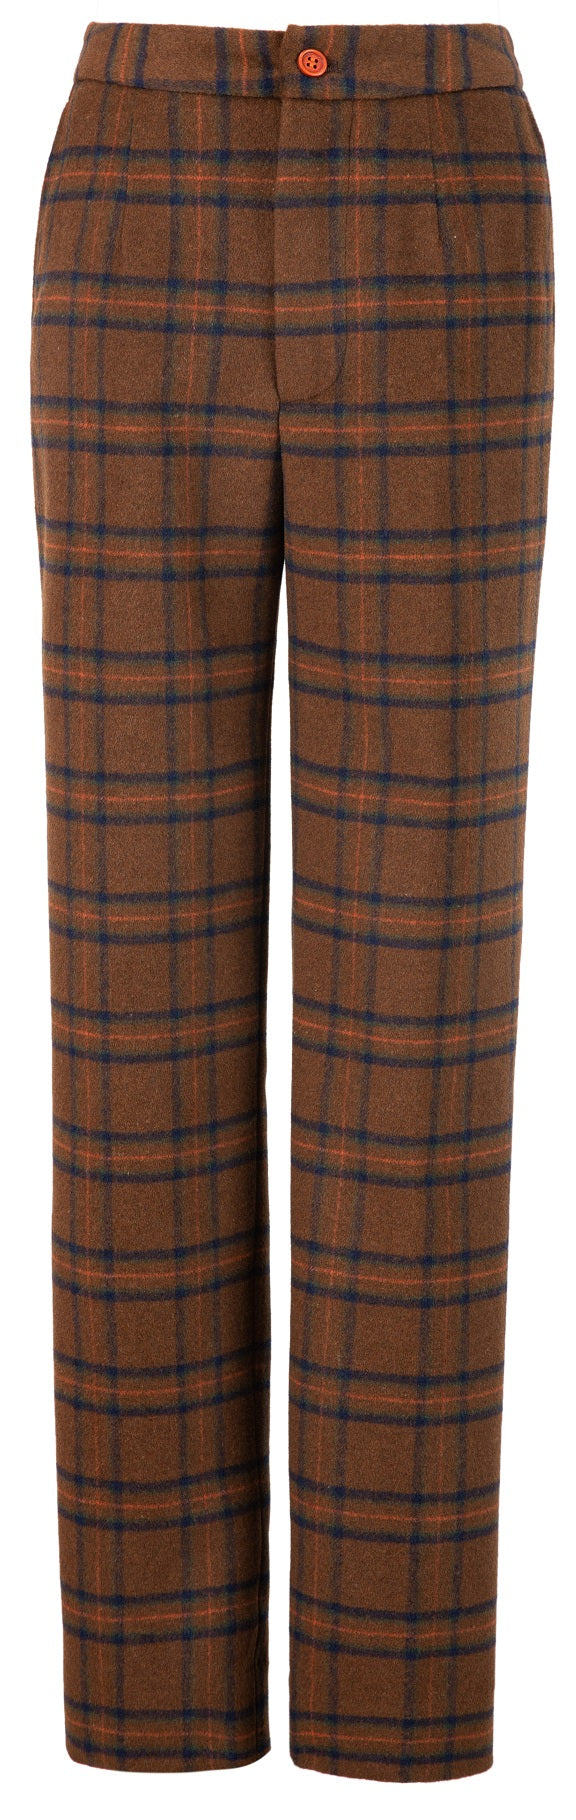 Chestnut Windowpane Plaid Tweed Trousers Womens